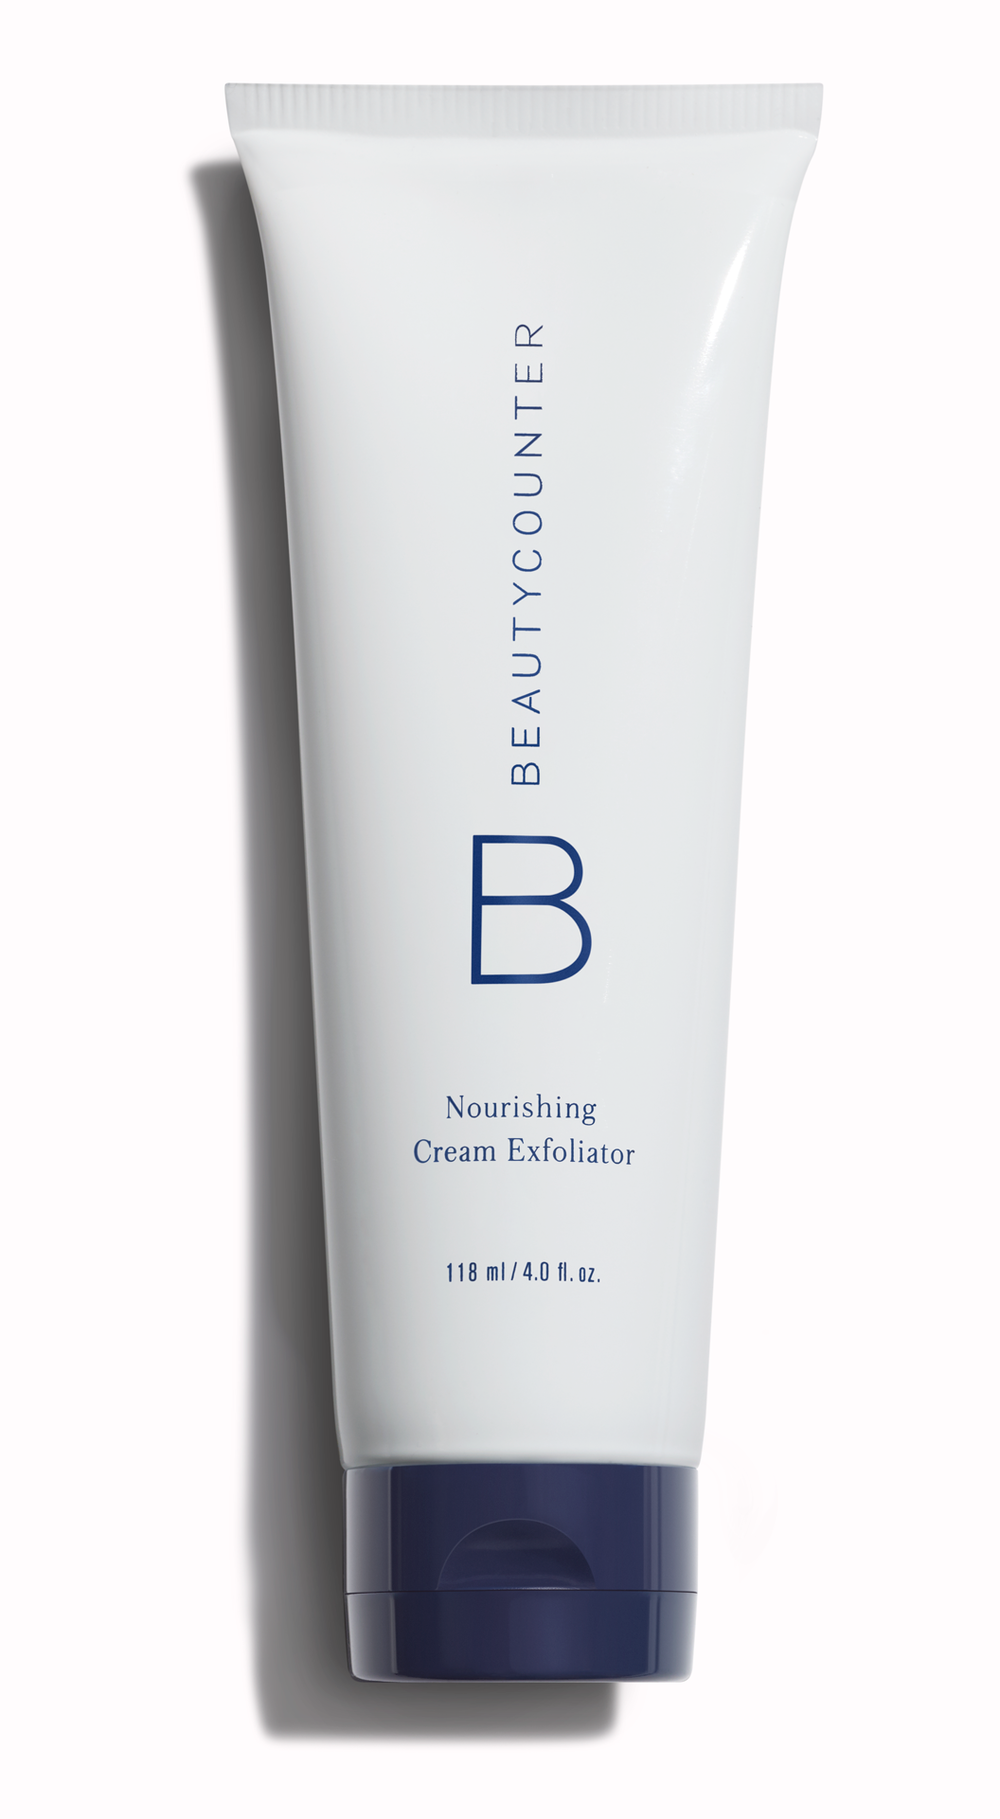 Face Wash - First, ya gotta wash your face. Make sure all the dirt is off and your face is clean before applying other products. This is my favorite because it's a gentle exfoliator so it's lifting dead skin as well as nastiness. Great for sensitive skin.